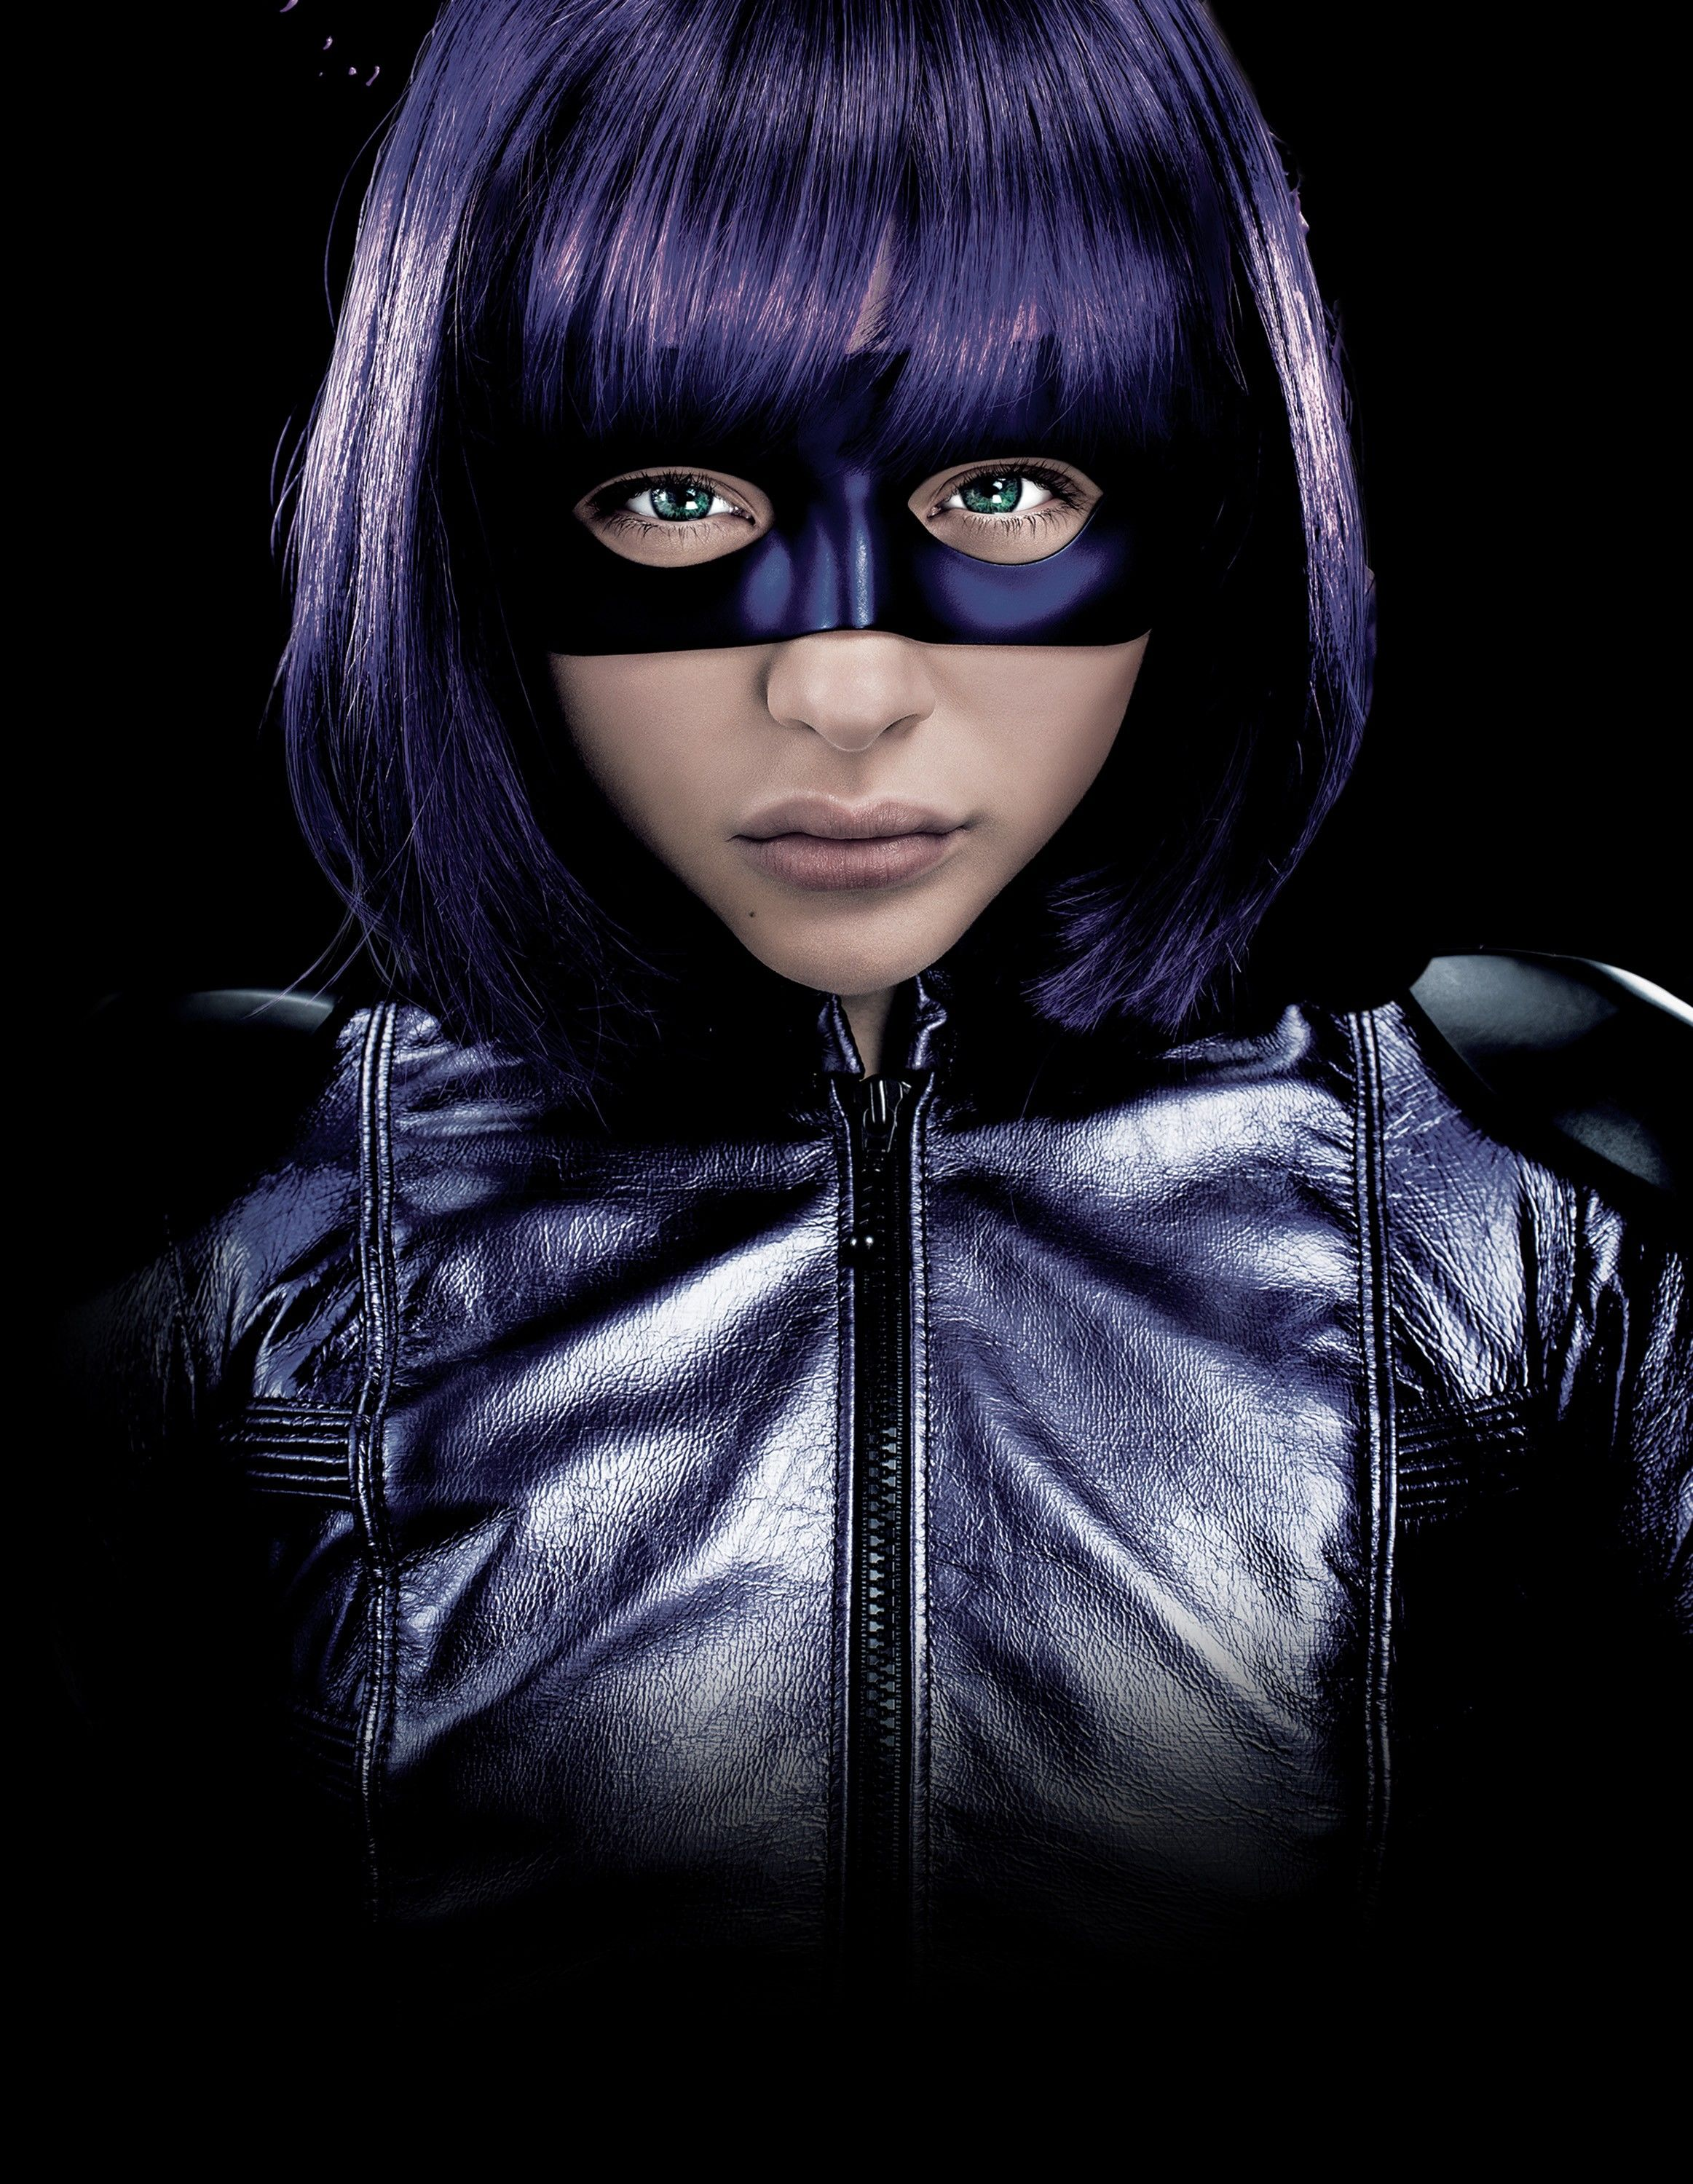 Kick ass hit girl costume